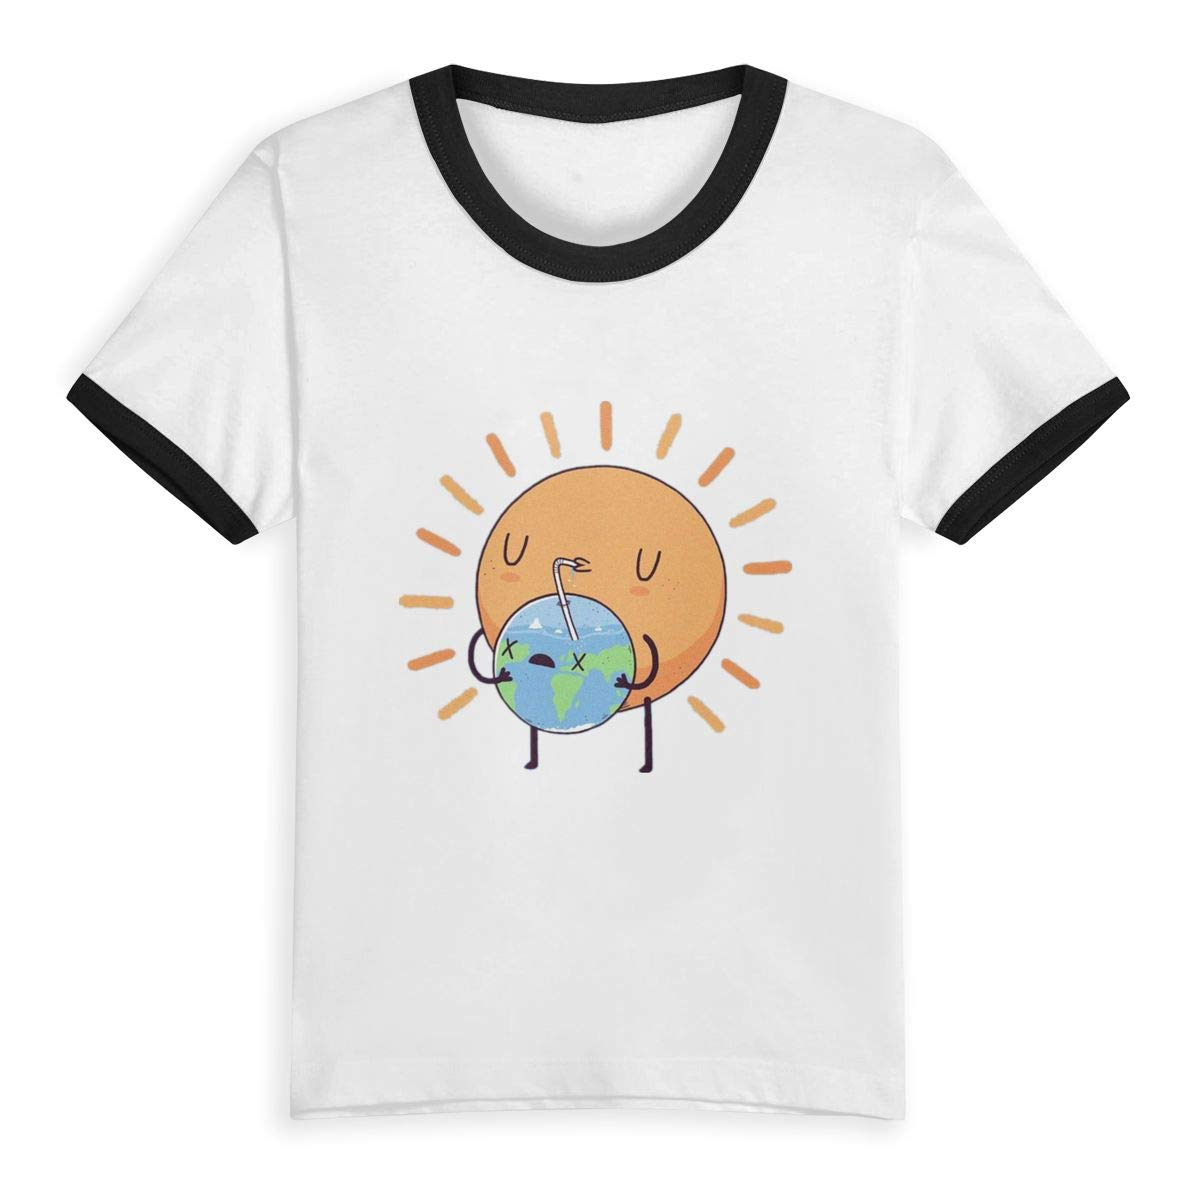 Sun Drink Water Children Kids Boys Girls Short Sleeve T-Shirt Tee 2T-6T